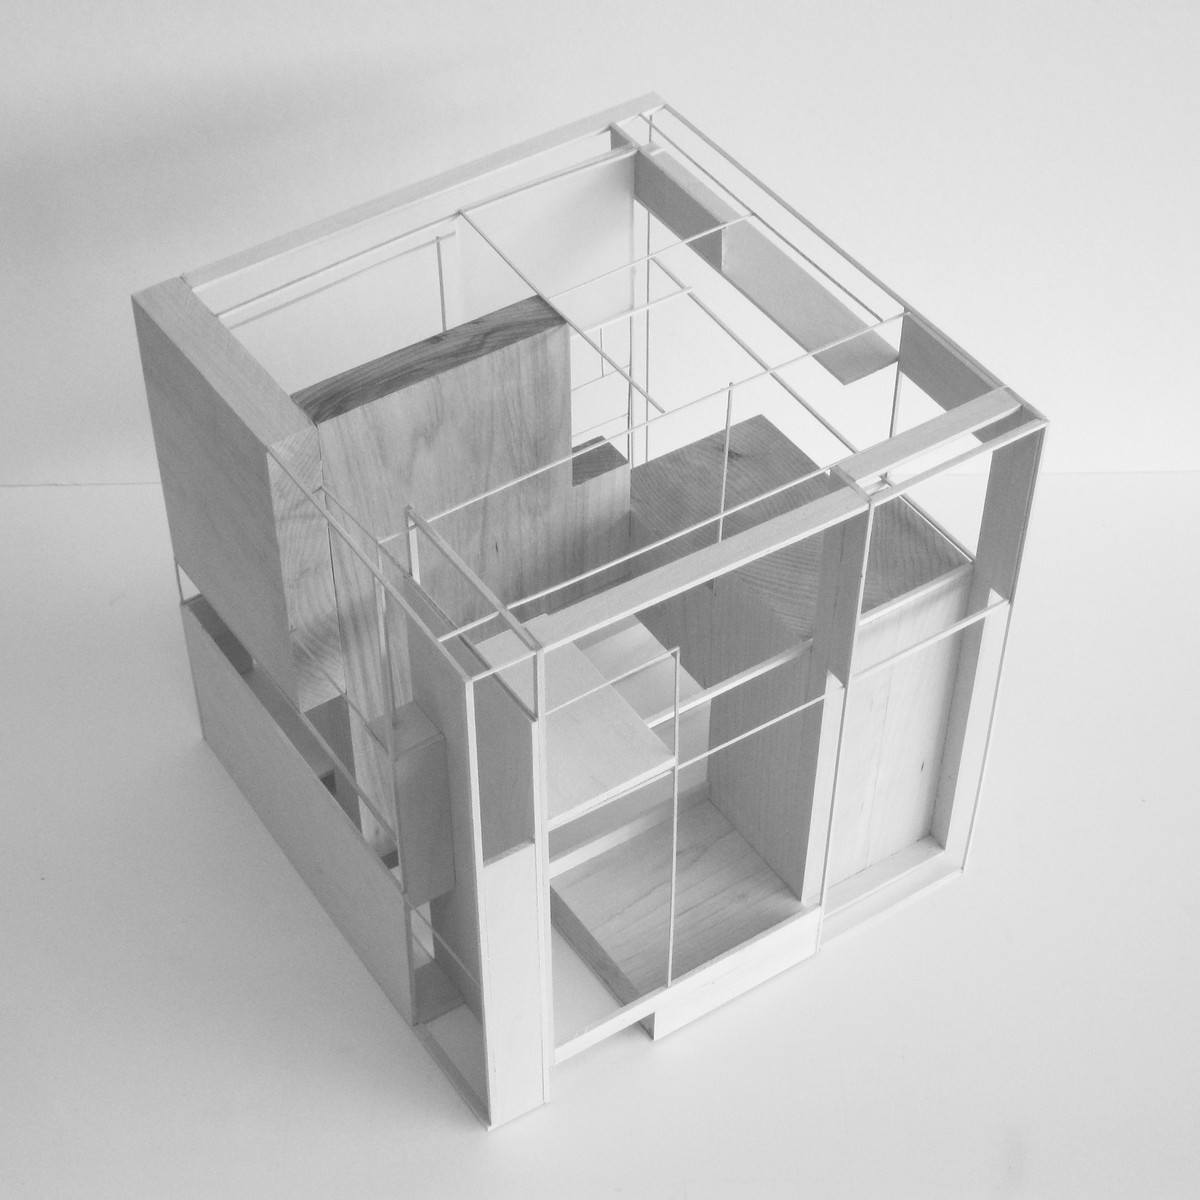 Cube construct final design proposal branko micic for Cube home plans